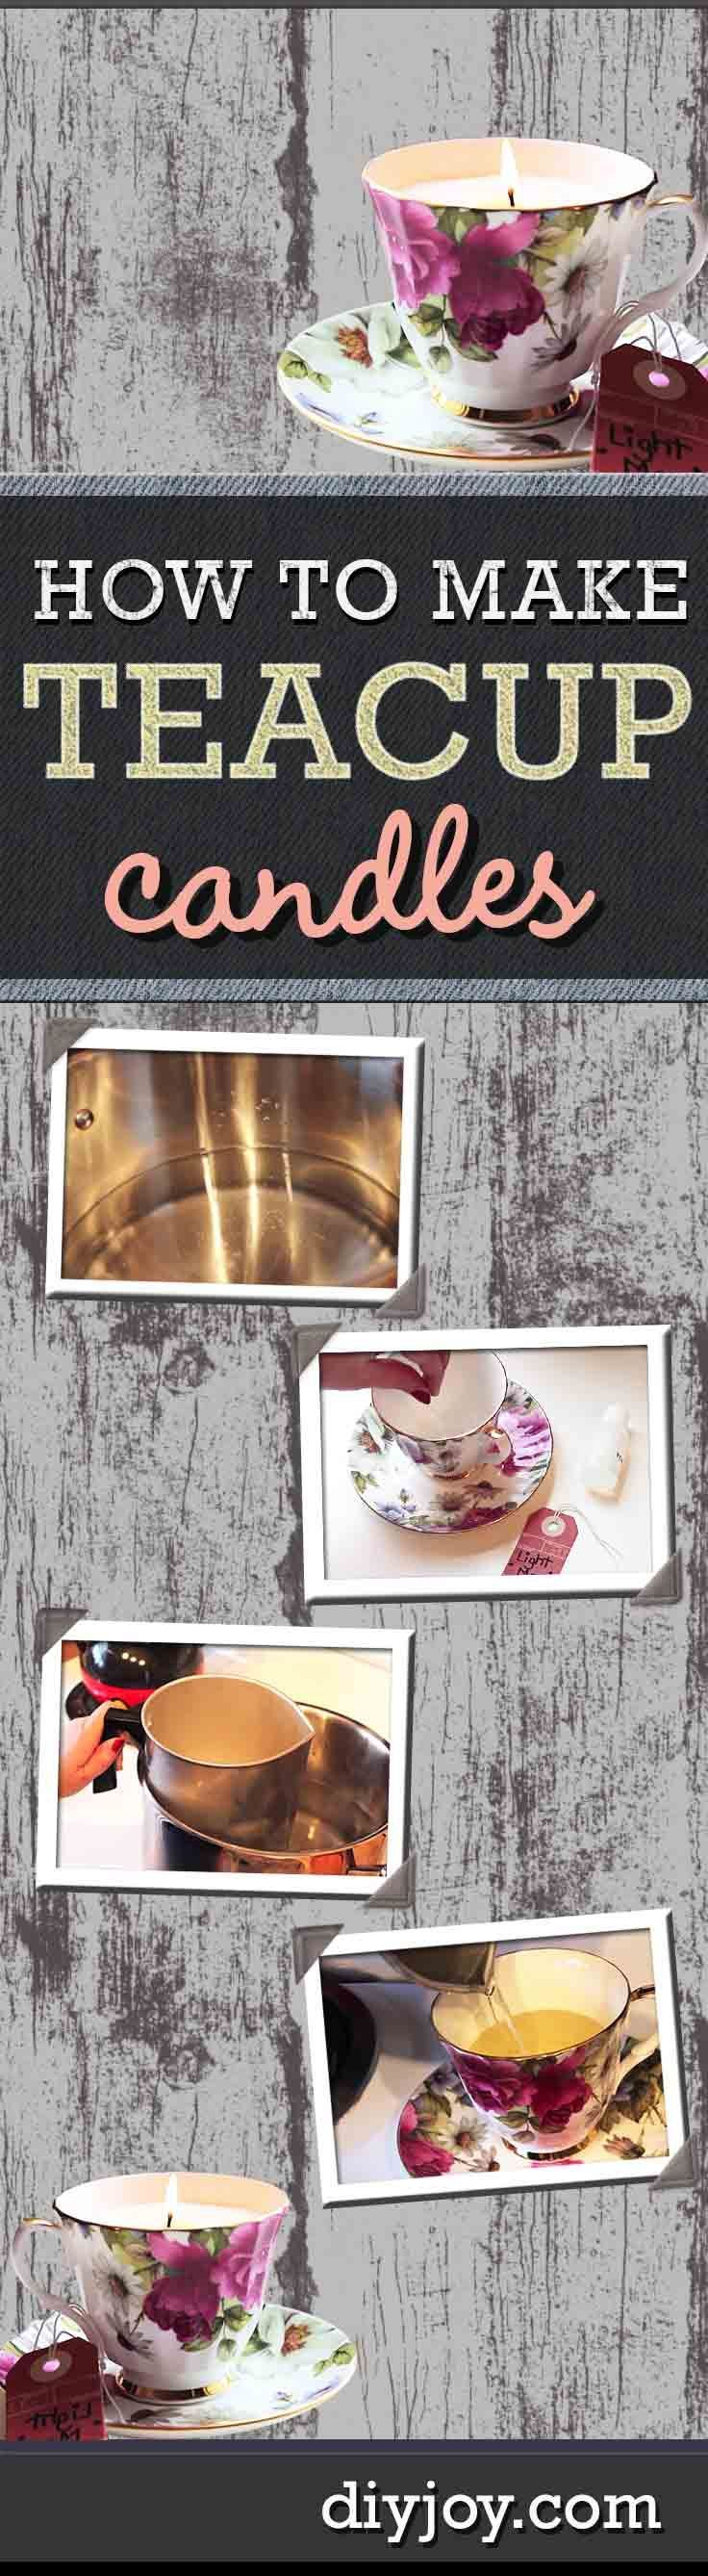 best diy candles images on pinterest bricolage decorated